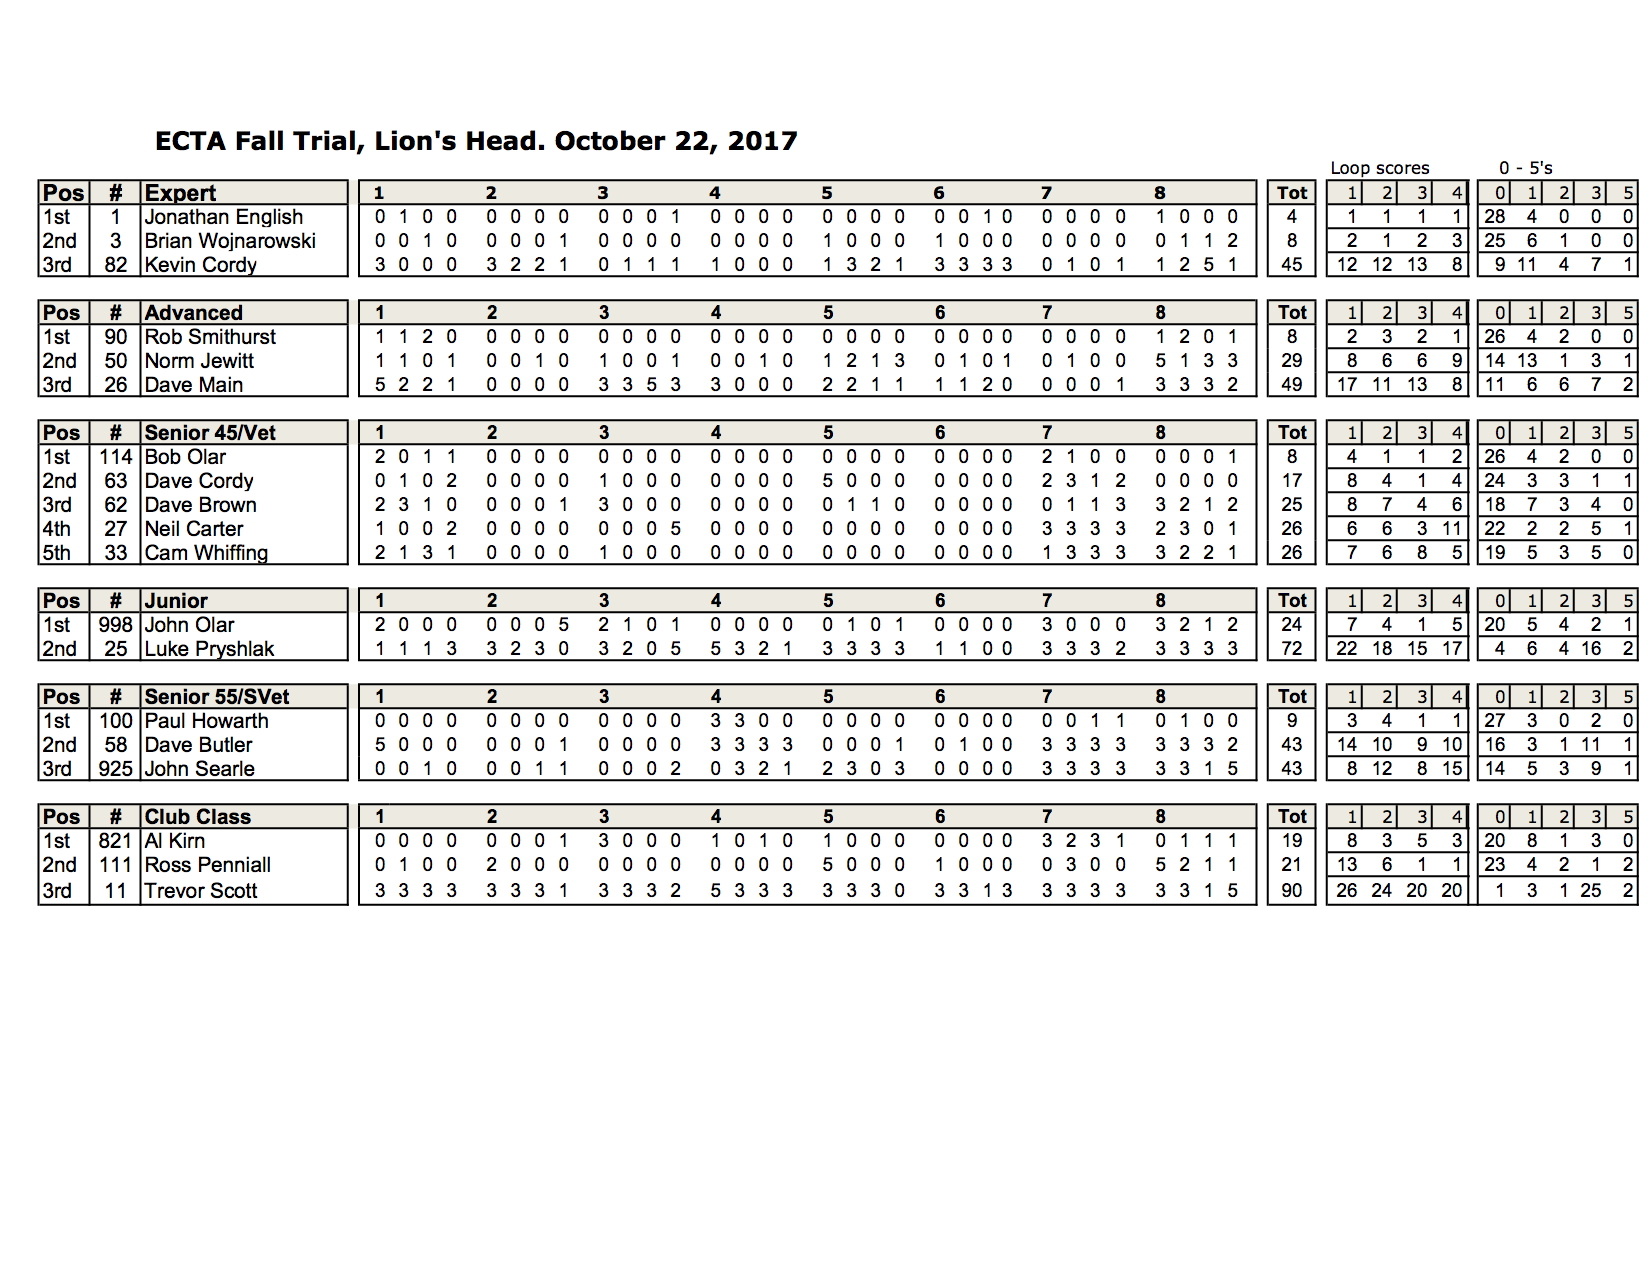 ECTA Lion's Head Fall Trial Results 10-22-2017